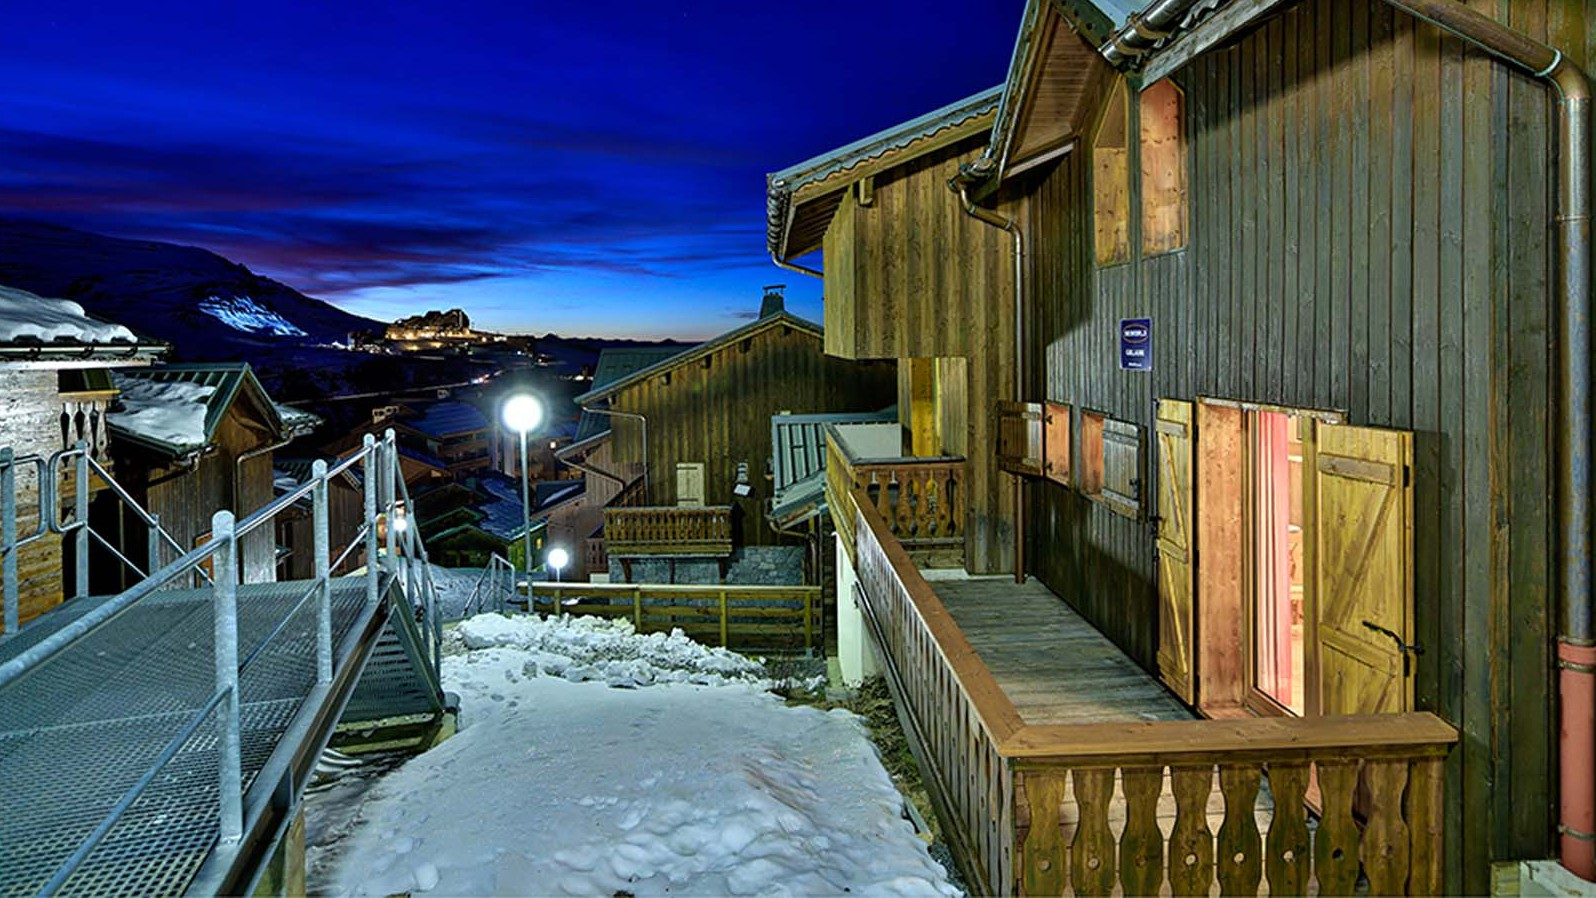 Exterior night - Chalet Guillaume - Ski Chalet in La Plagne, France